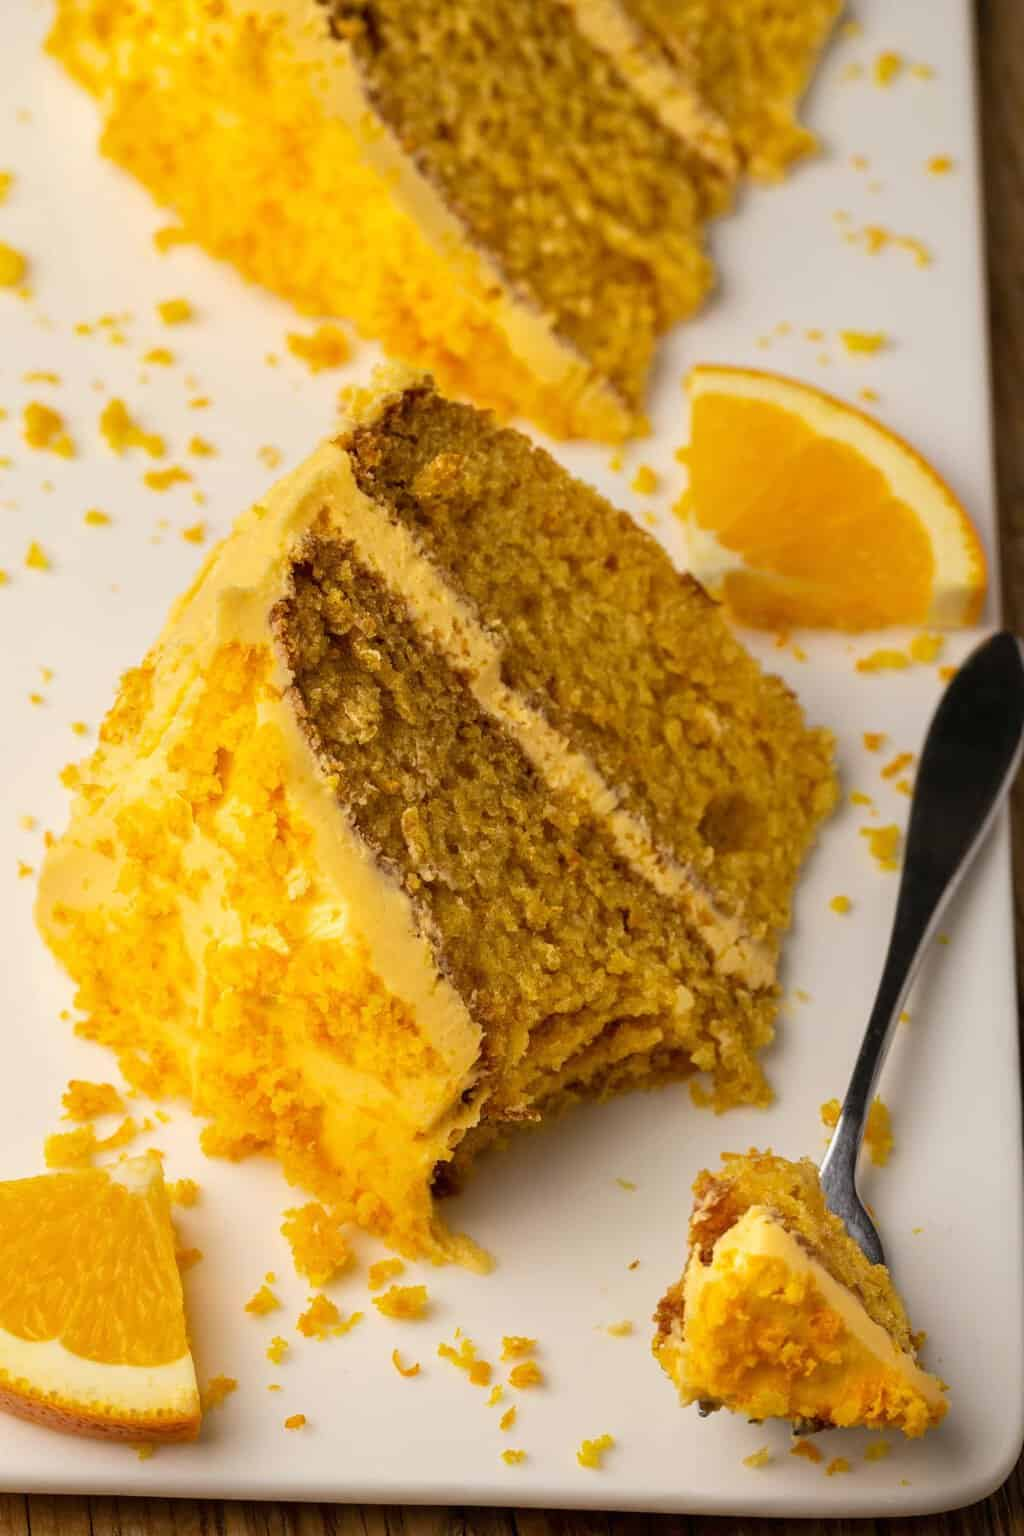 Slice of vegan orange cake on a white plate with a cake fork.